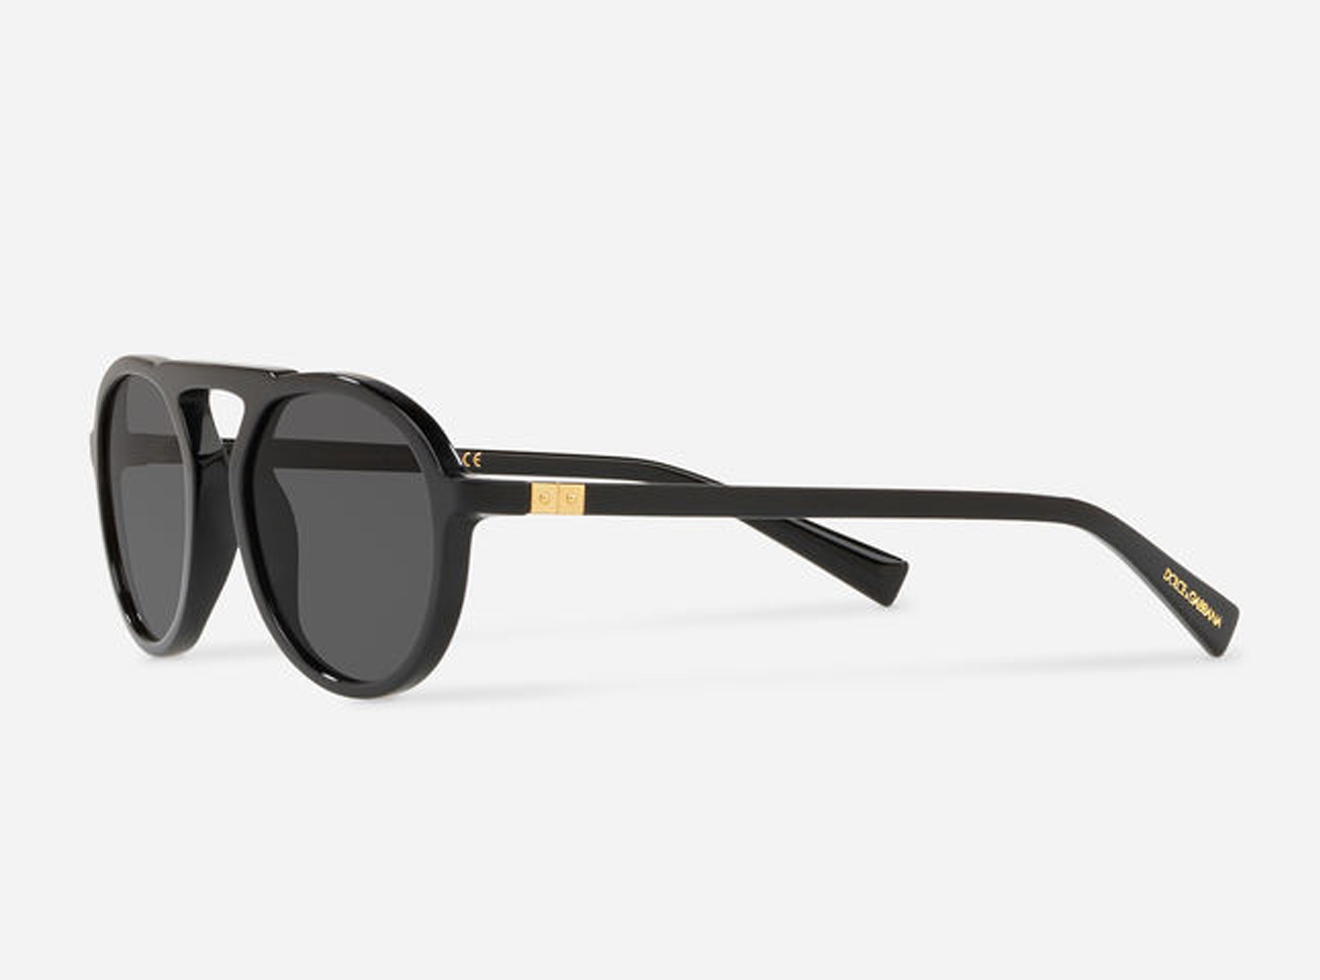 Dolce & Gabbana Dg Secret sunglasses